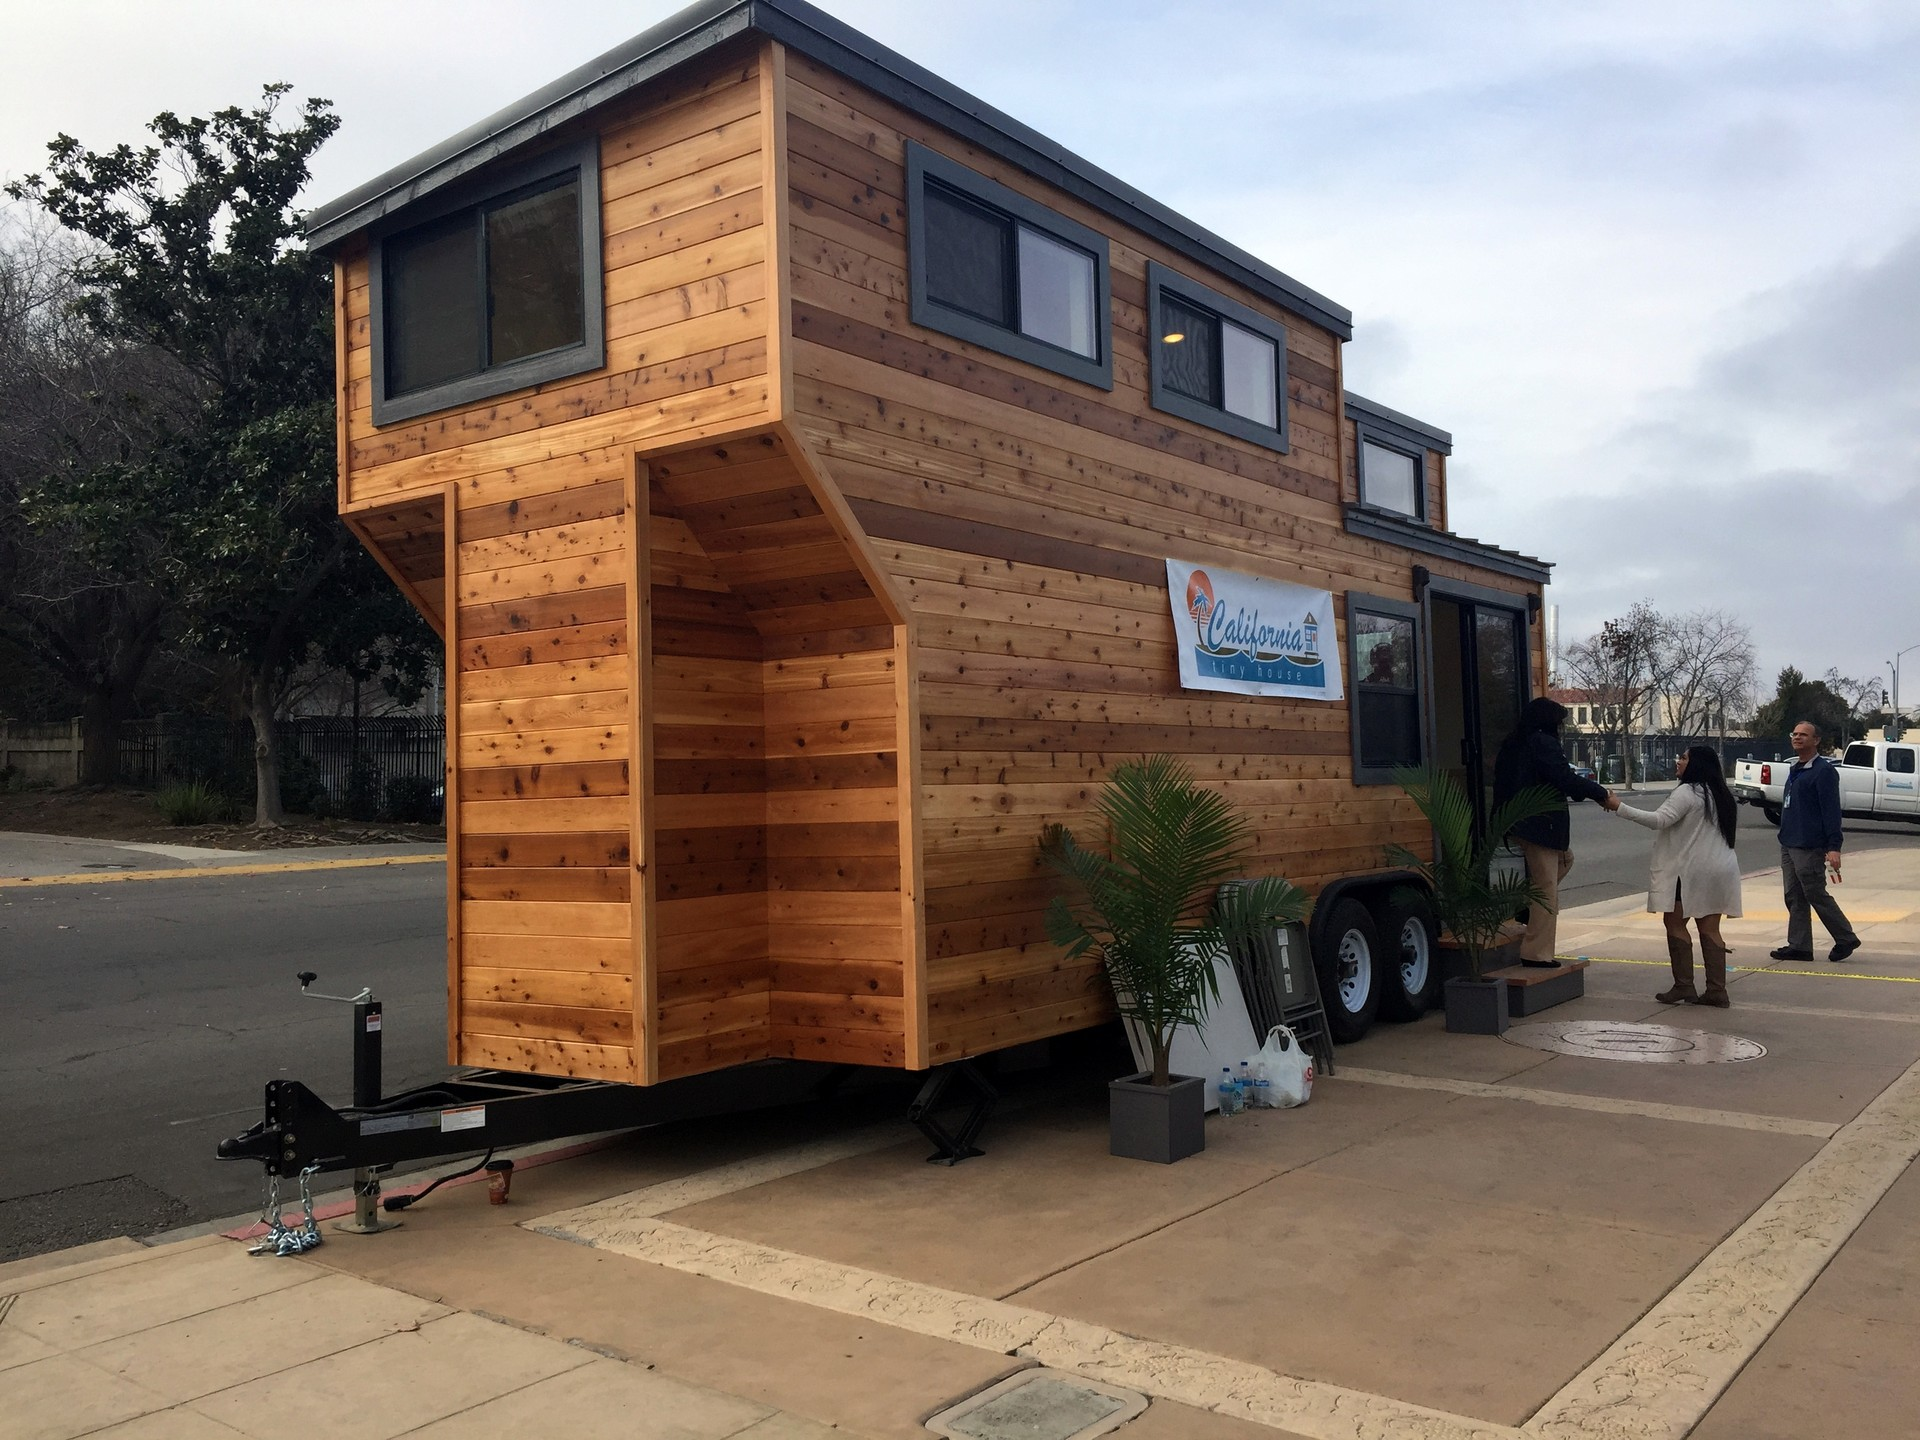 Fresno Passes Groundbreaking Tiny House Rules The